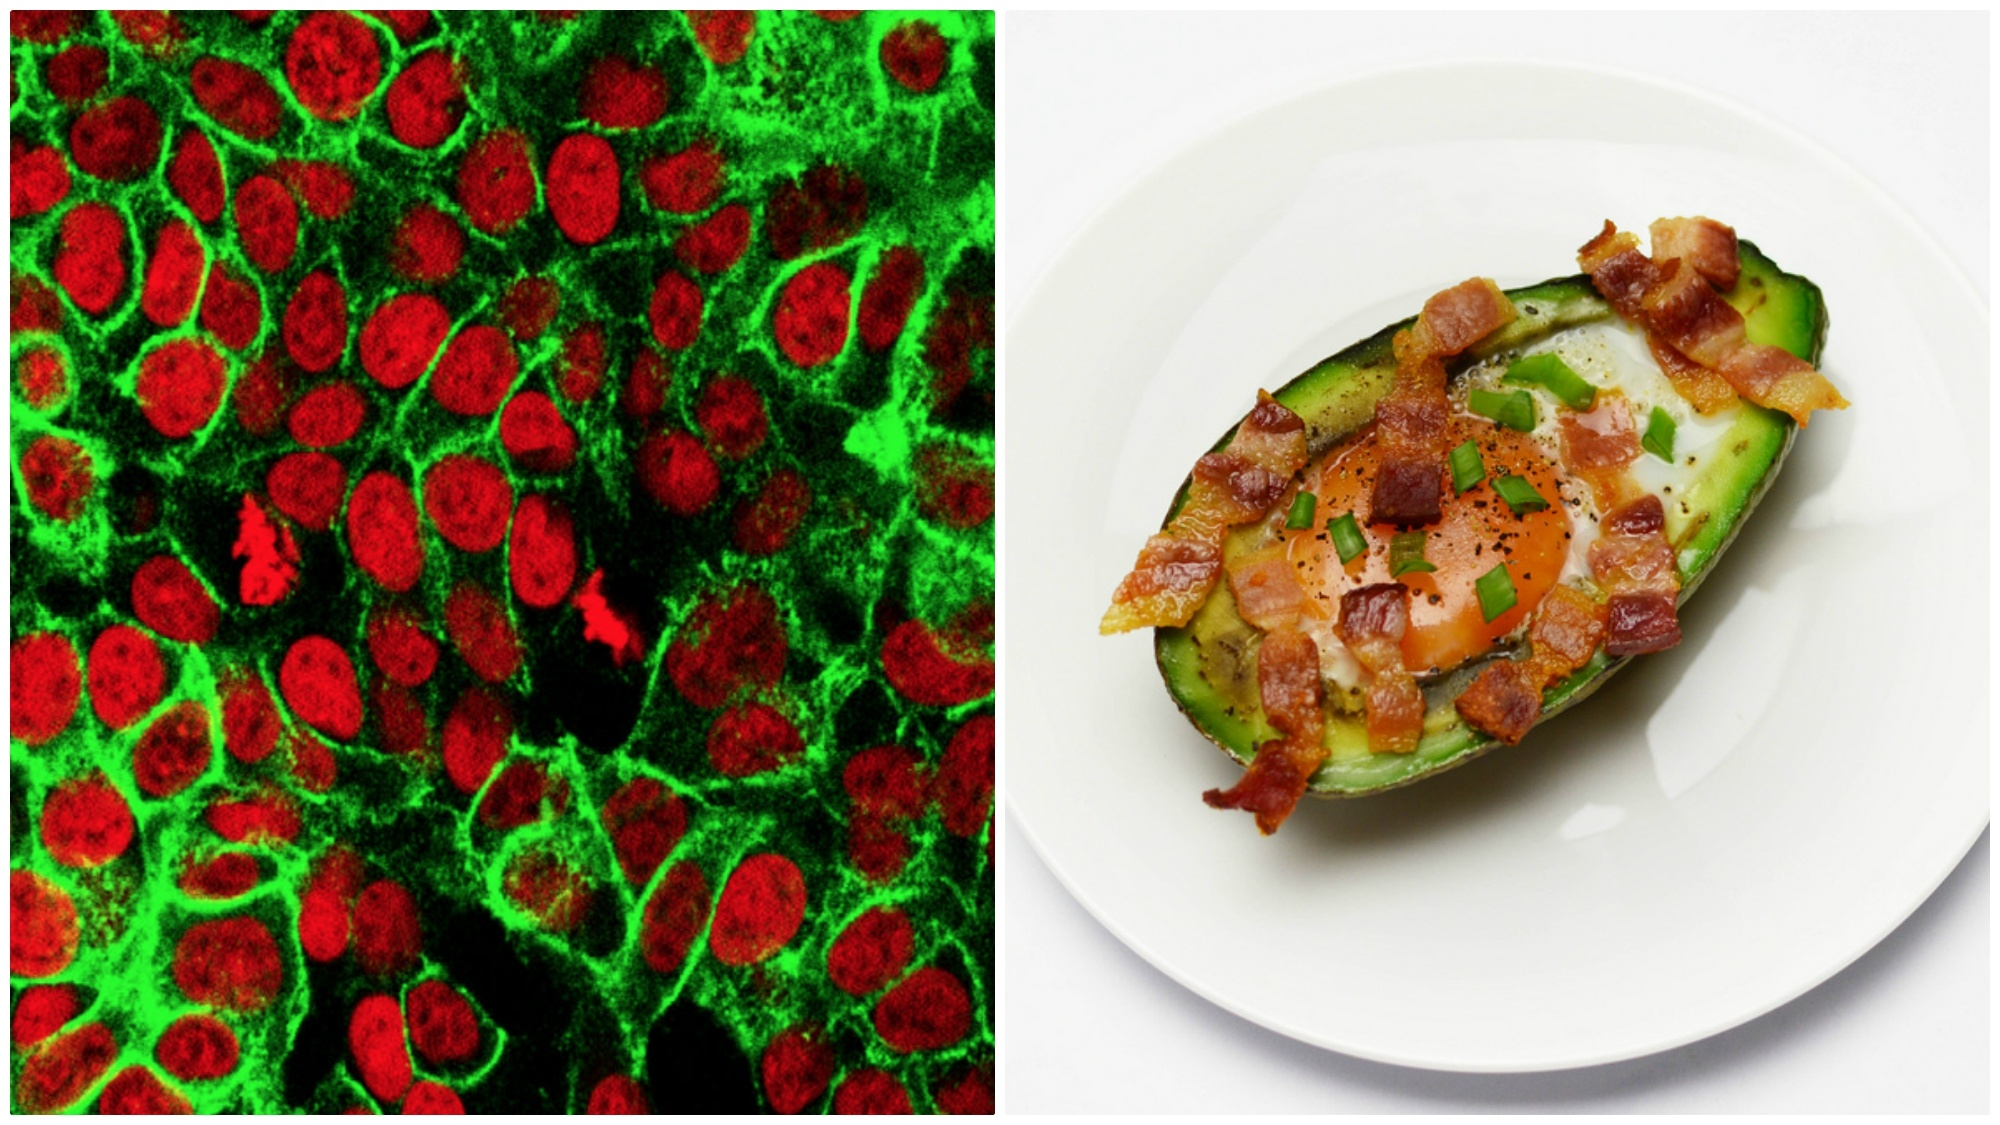 The keto diet and cancer: Why some doctors believe ketosis 'starves' tumors